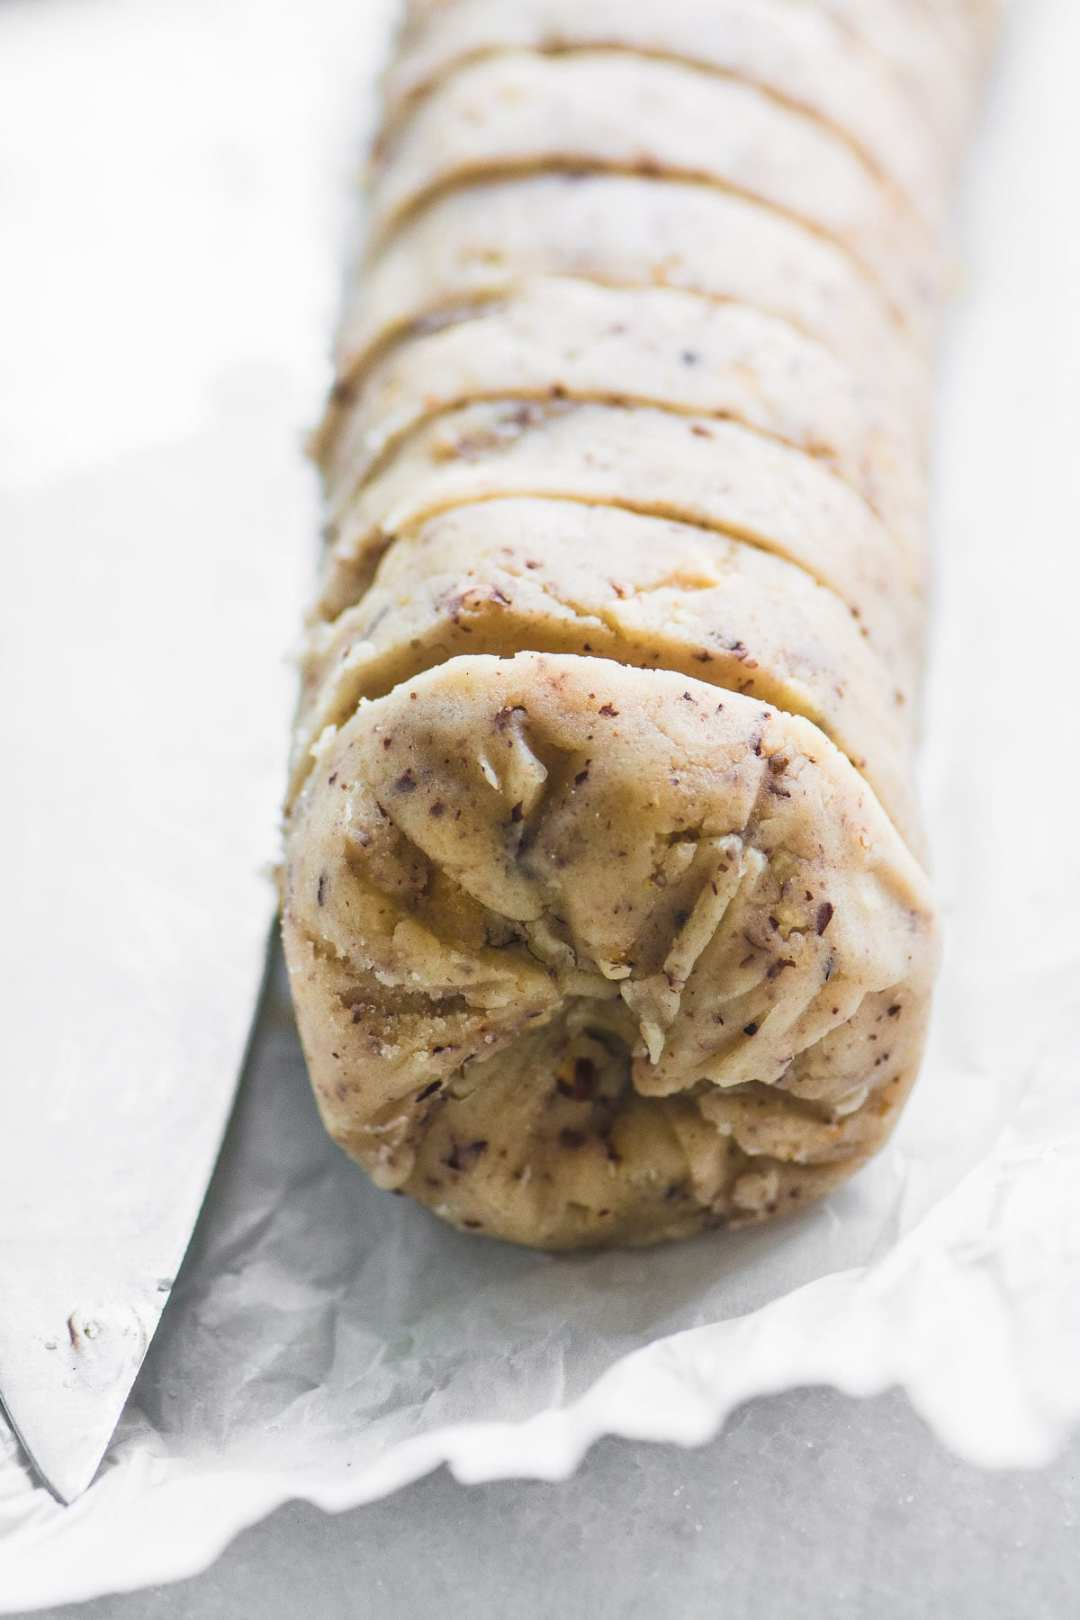 A roll of Hazelnut Sandies dough